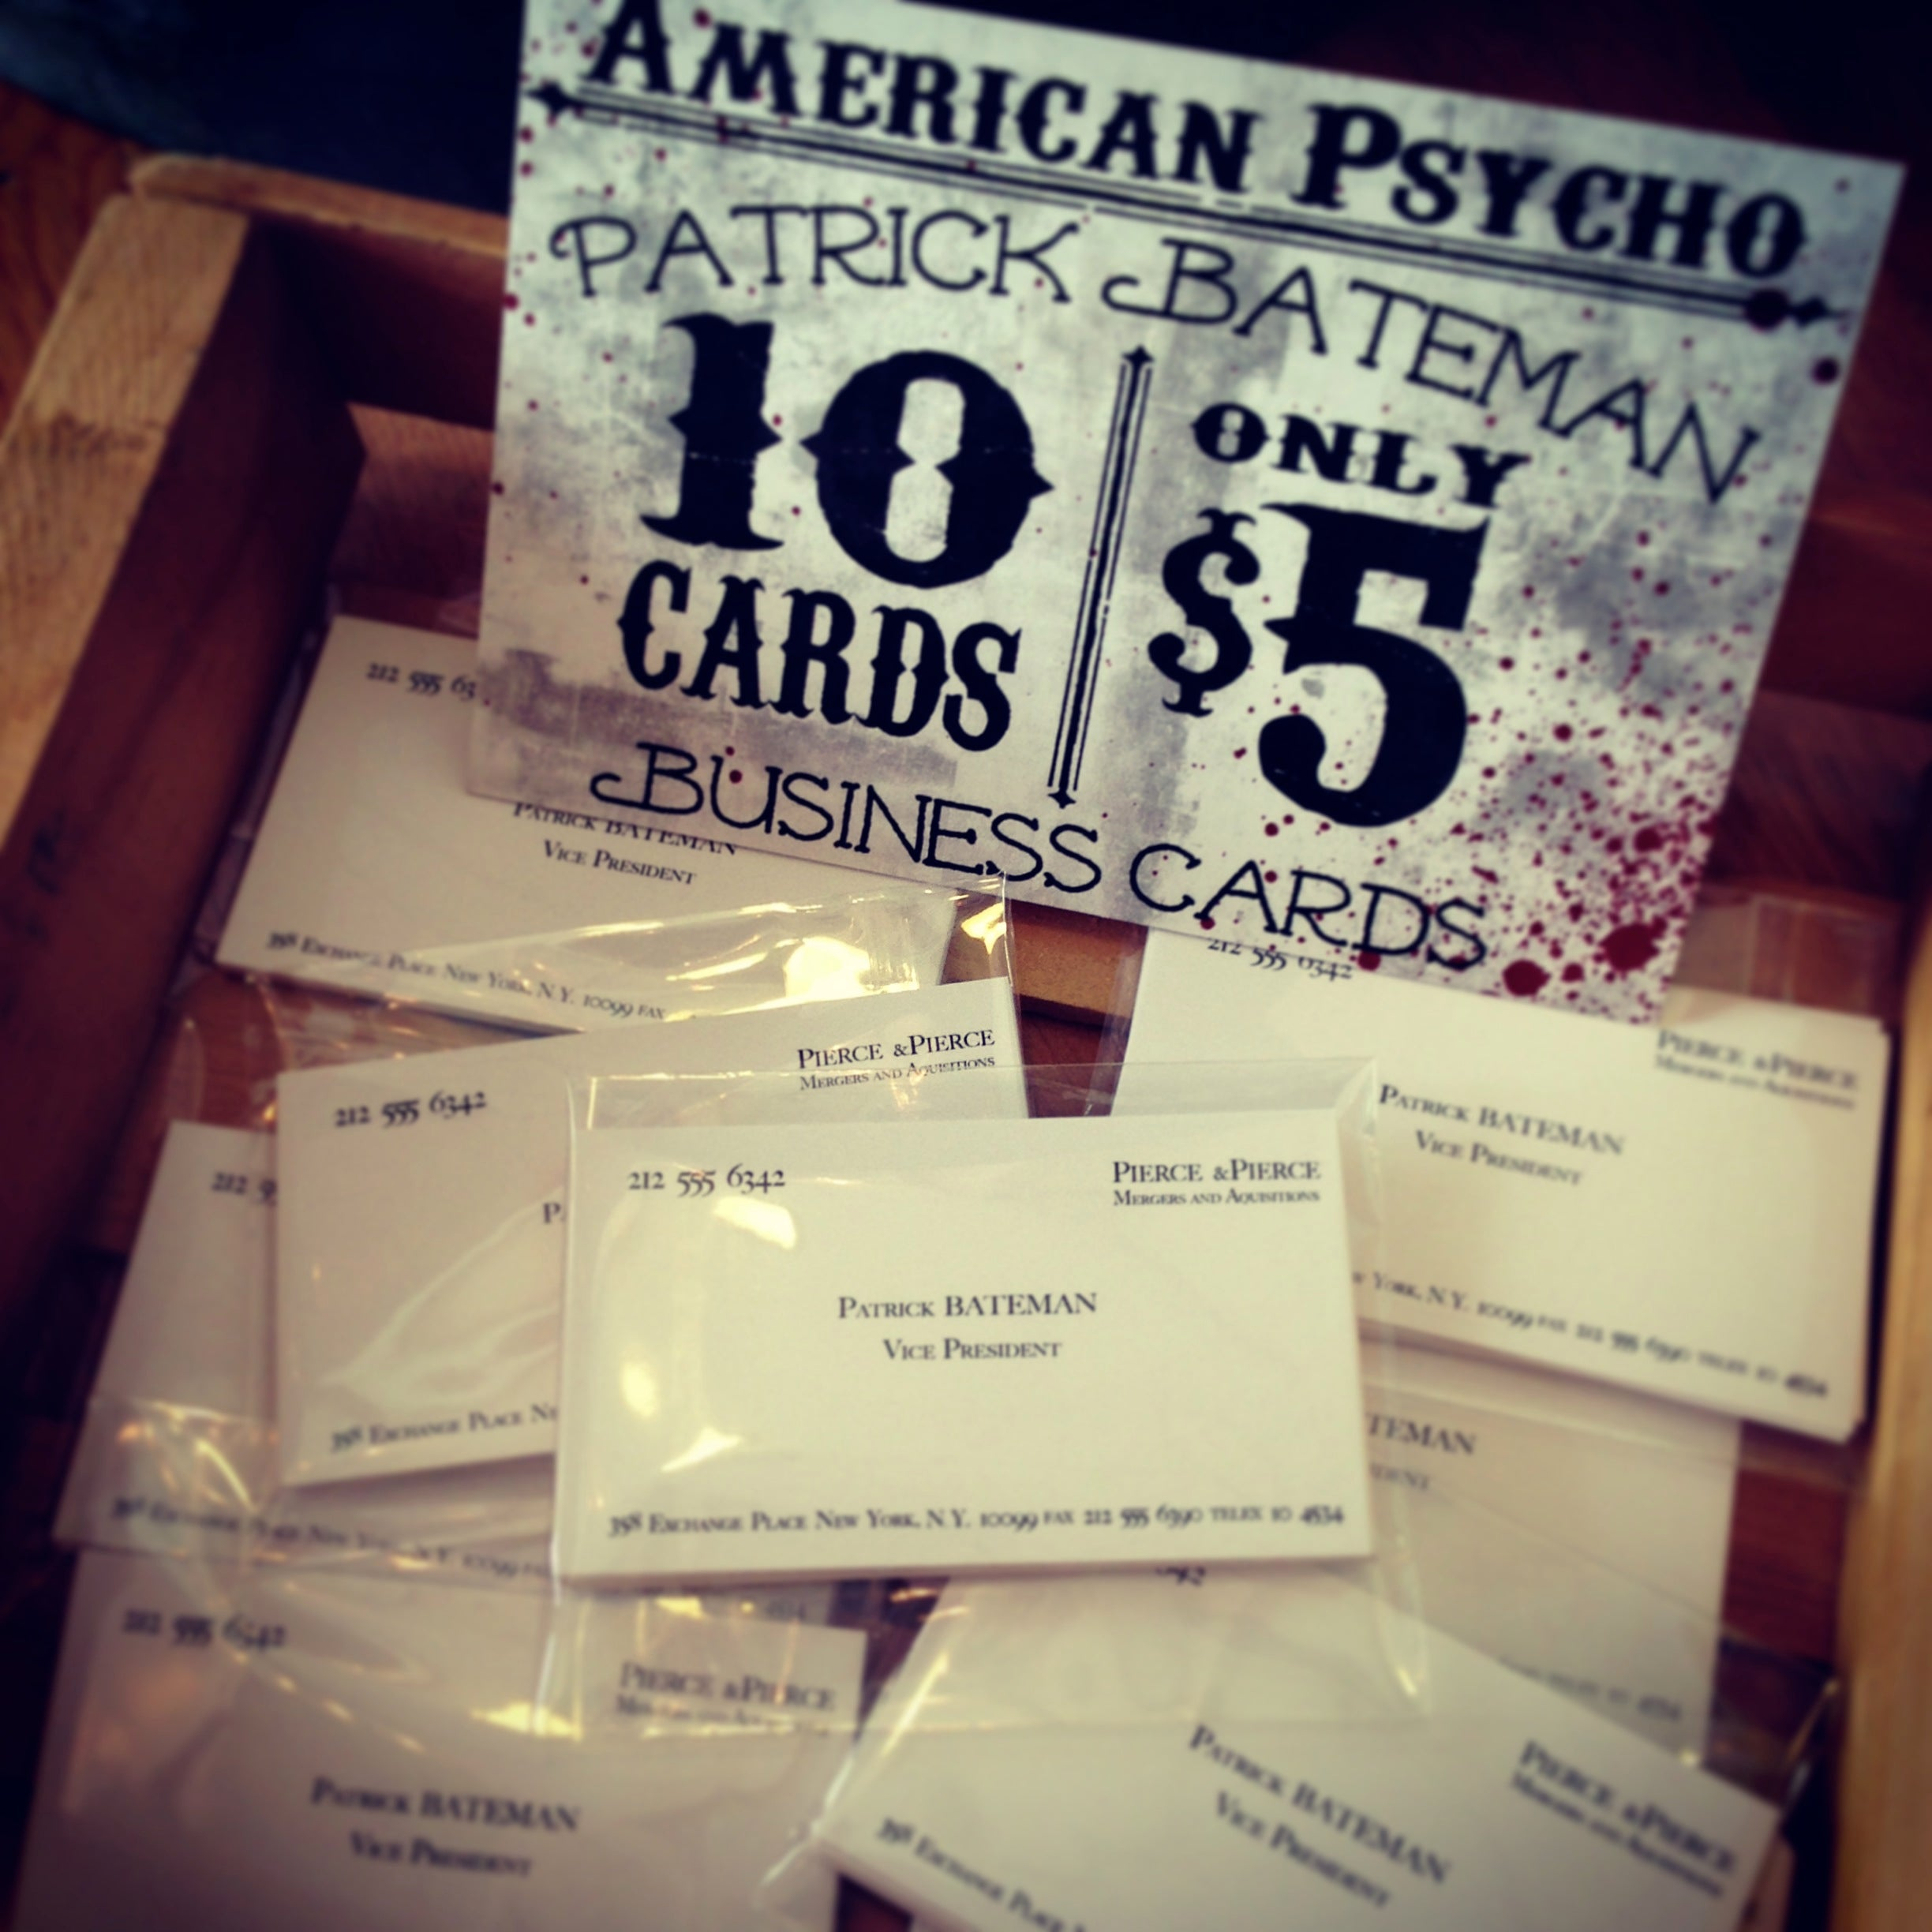 Patrick Bateman Business Cards • American Psycho – Thirteenth Floor